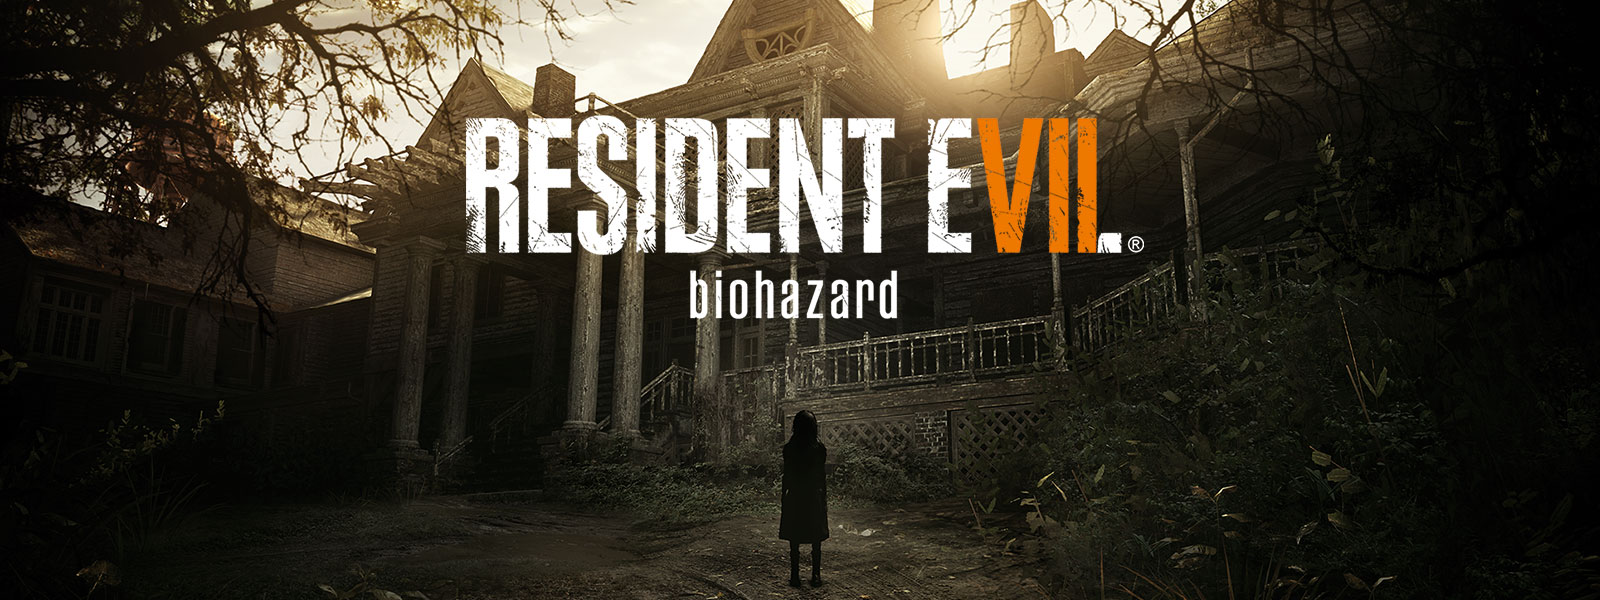 Resident Evil 7 Biohazard Gold Edition boxshot over scene of spooky girl standing in front of haunted house